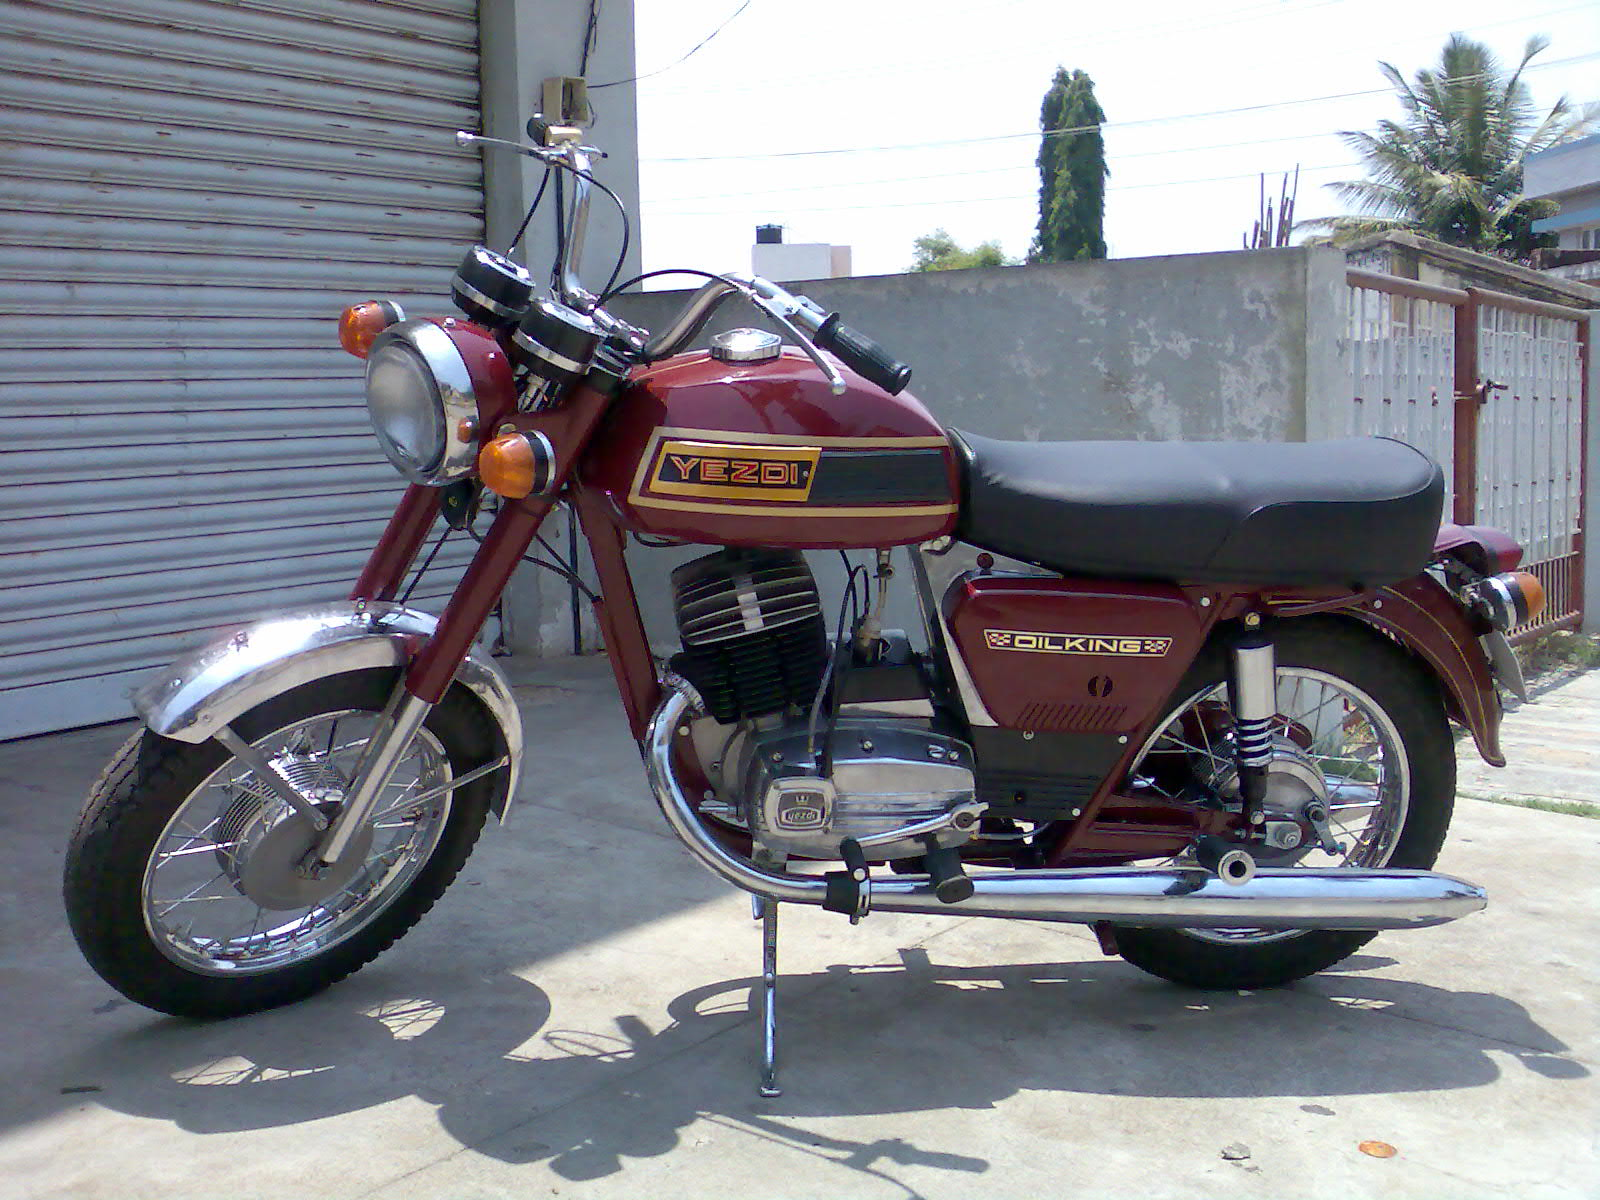 file yezdi oilking jpg wikimedia commons 1978 yamaha enticer 250 wiring diagram yamaha majesty 250 wiring diagram